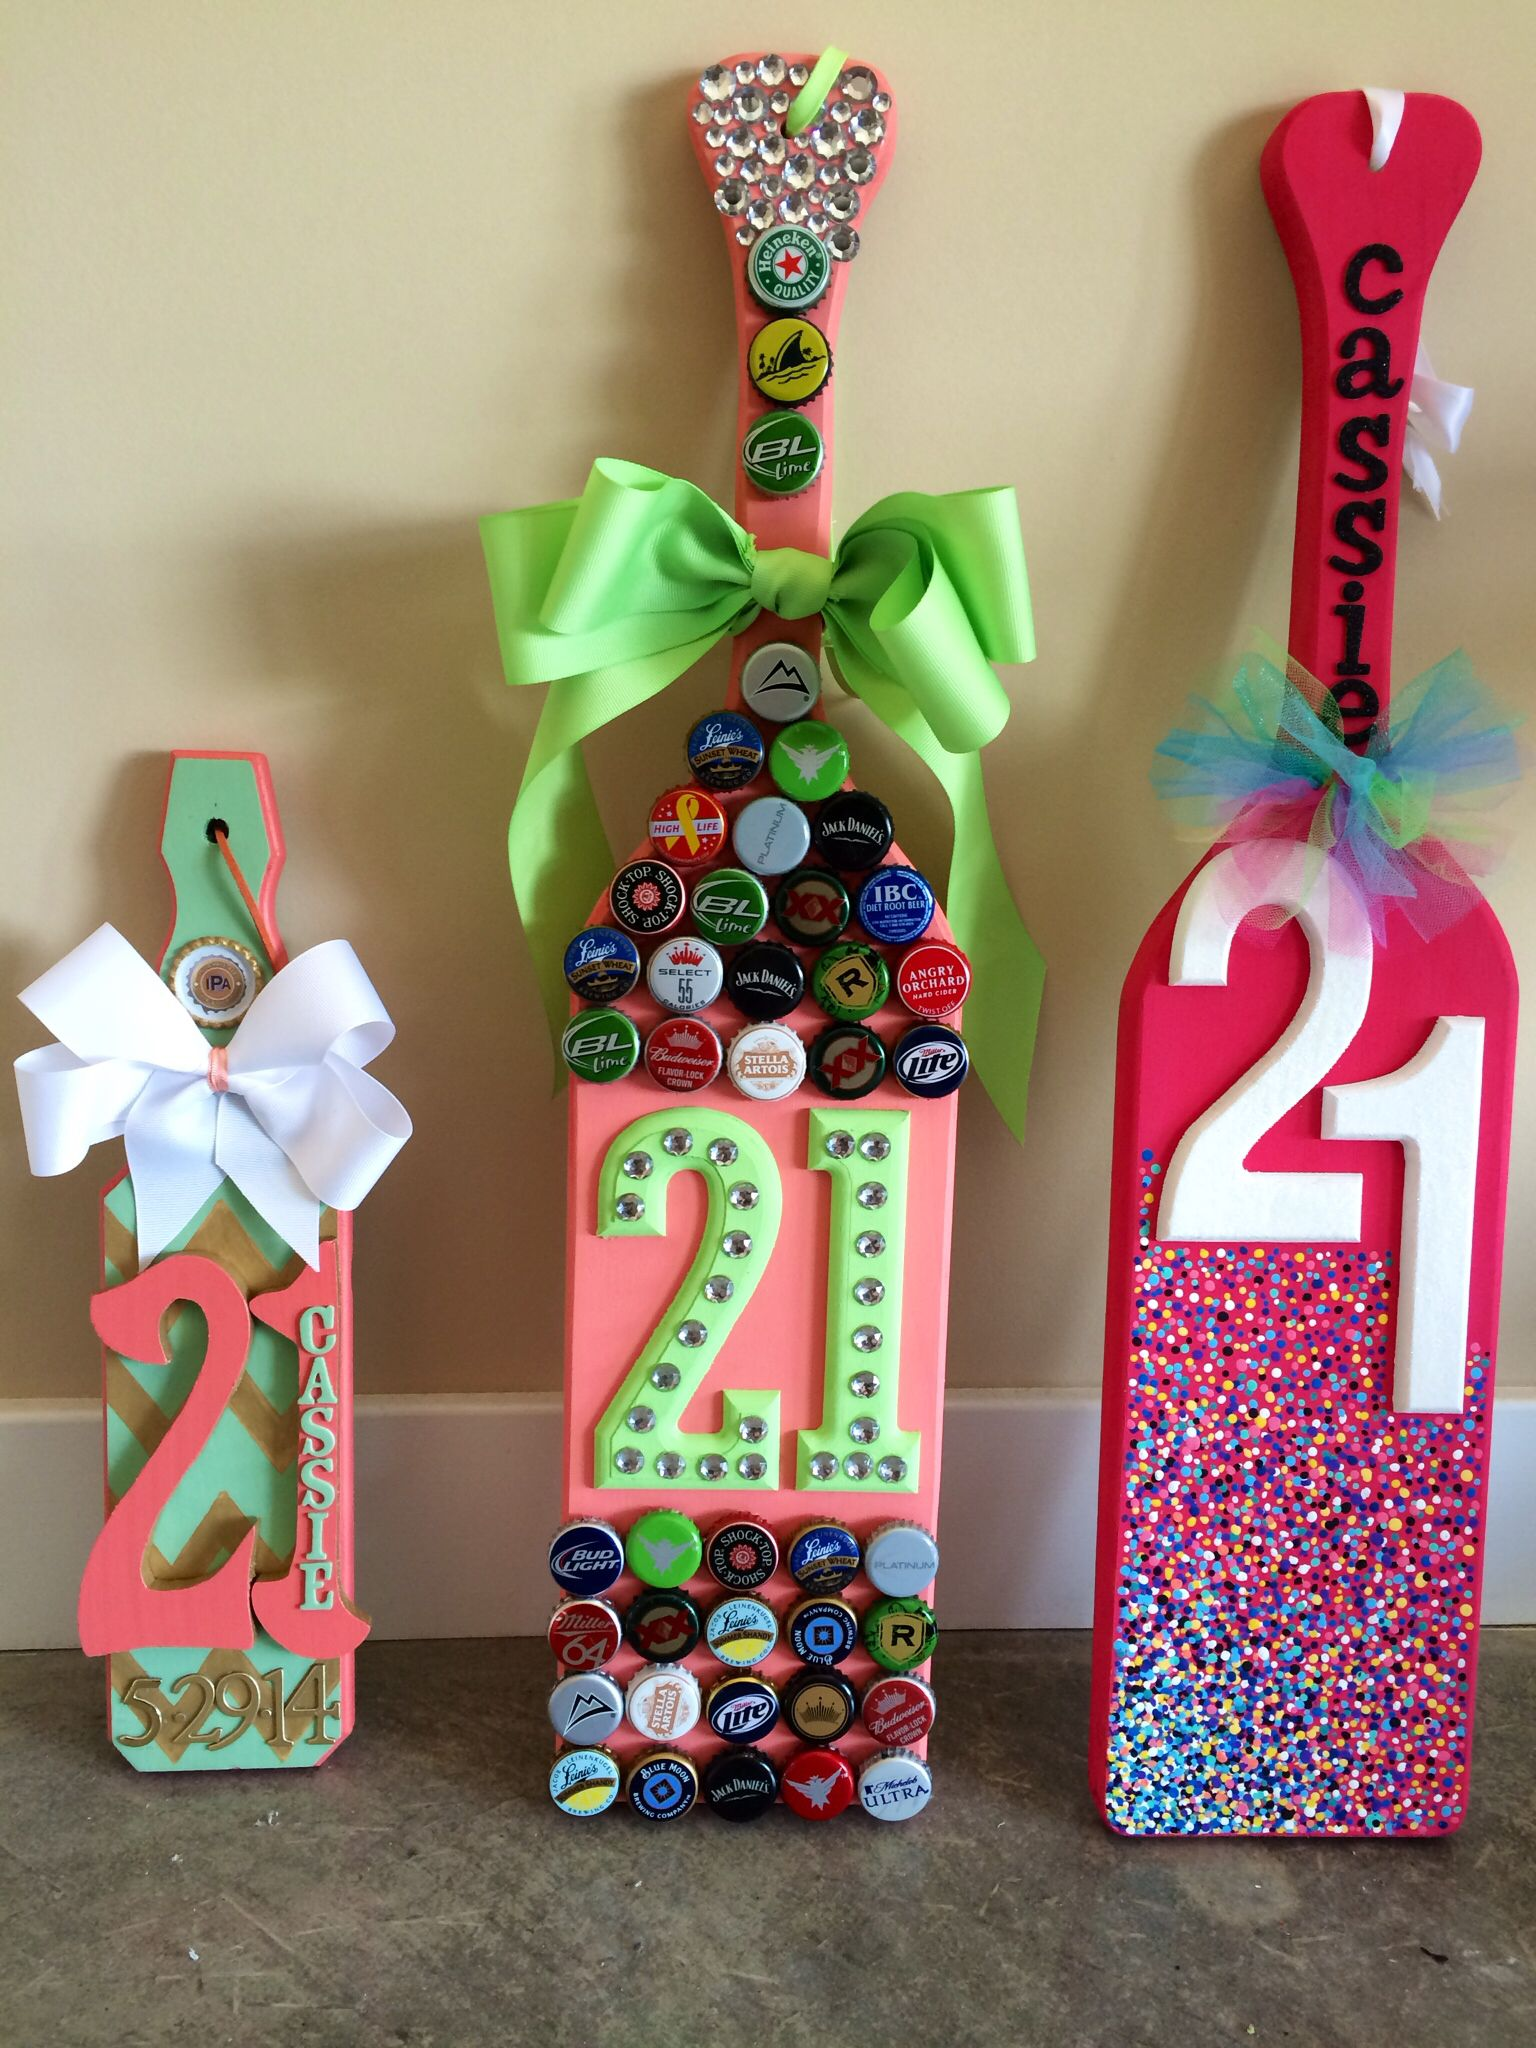 21st Birthday Paddles from my Roomie sorority sister best friend